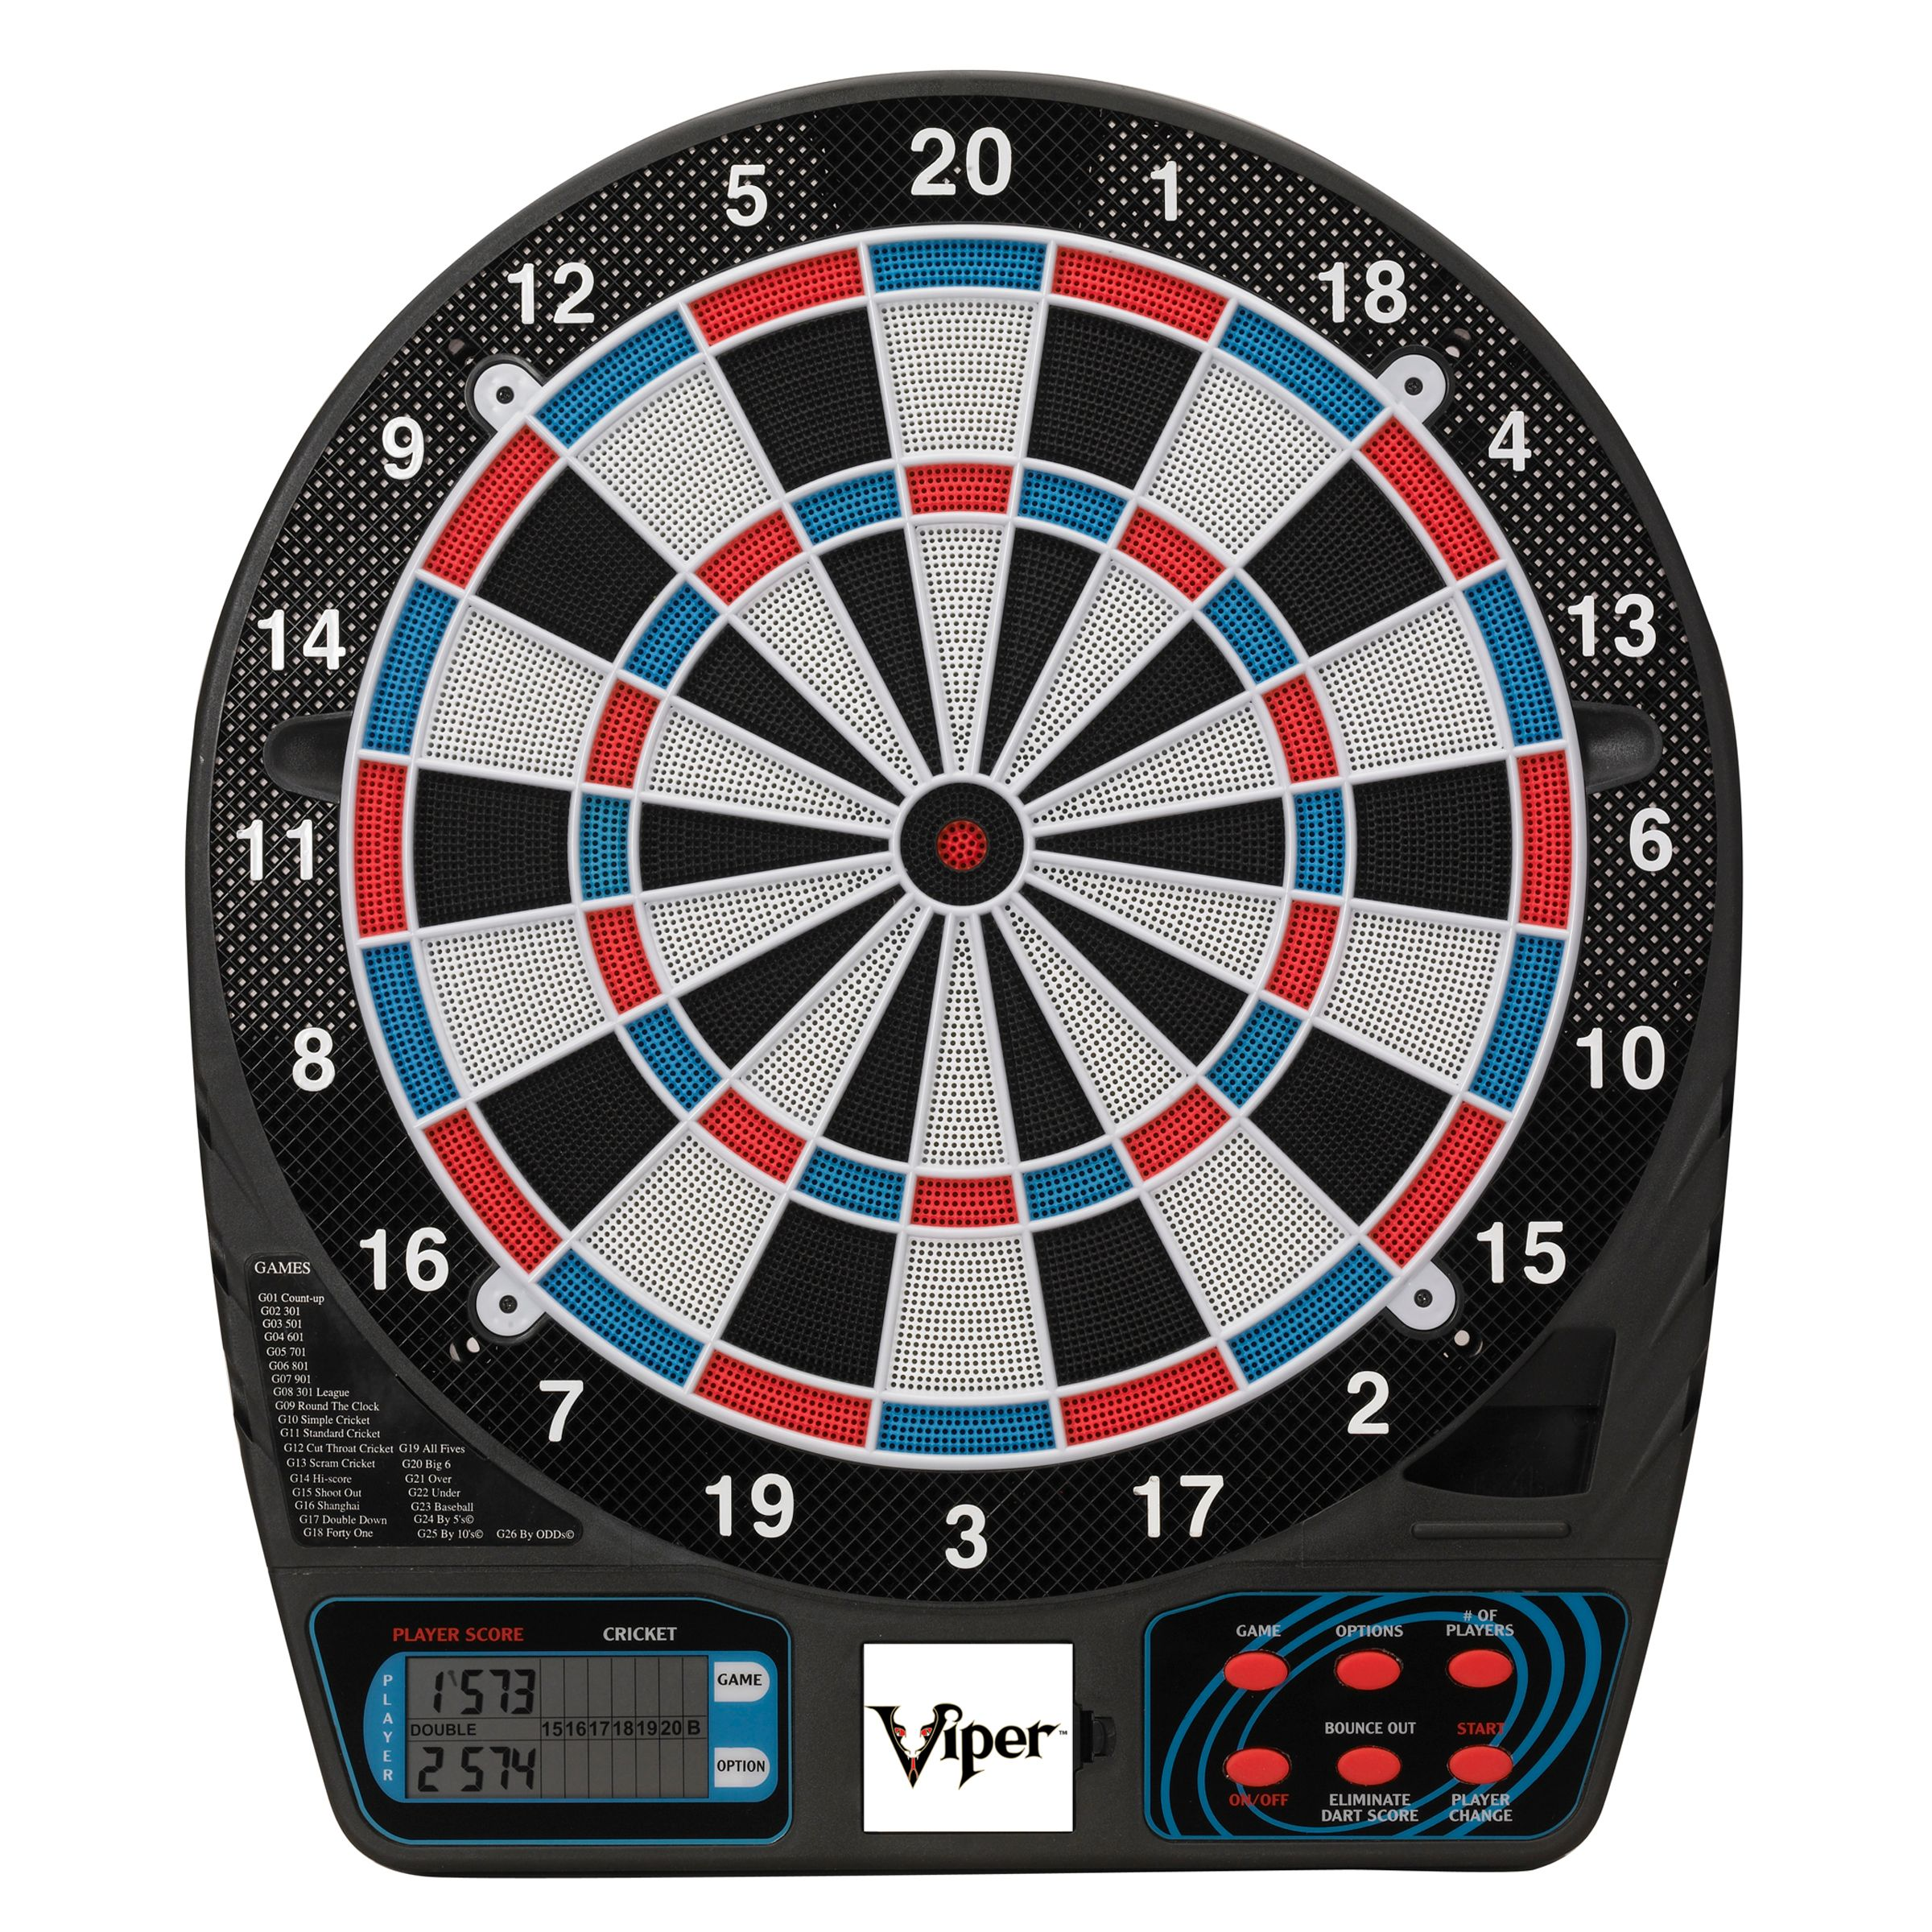 777 Electronic Dartboard